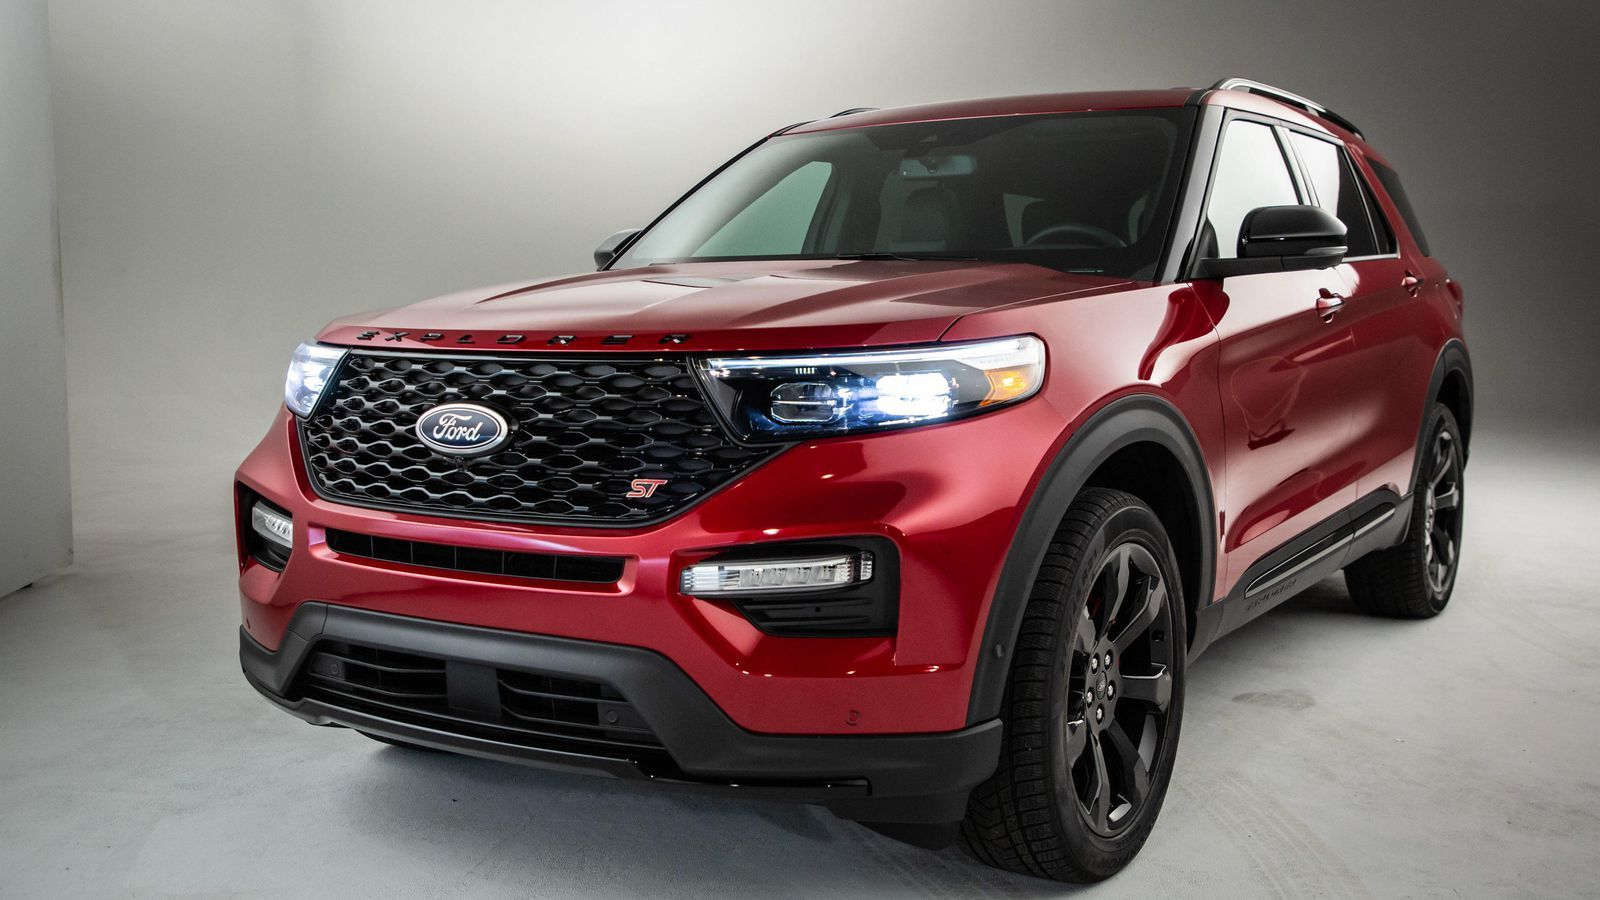 2020 Ford Explorer Build And Rumors And Release Date In 2020 2020 Ford Explorer Ford Explorer Ford Explorer Reviews